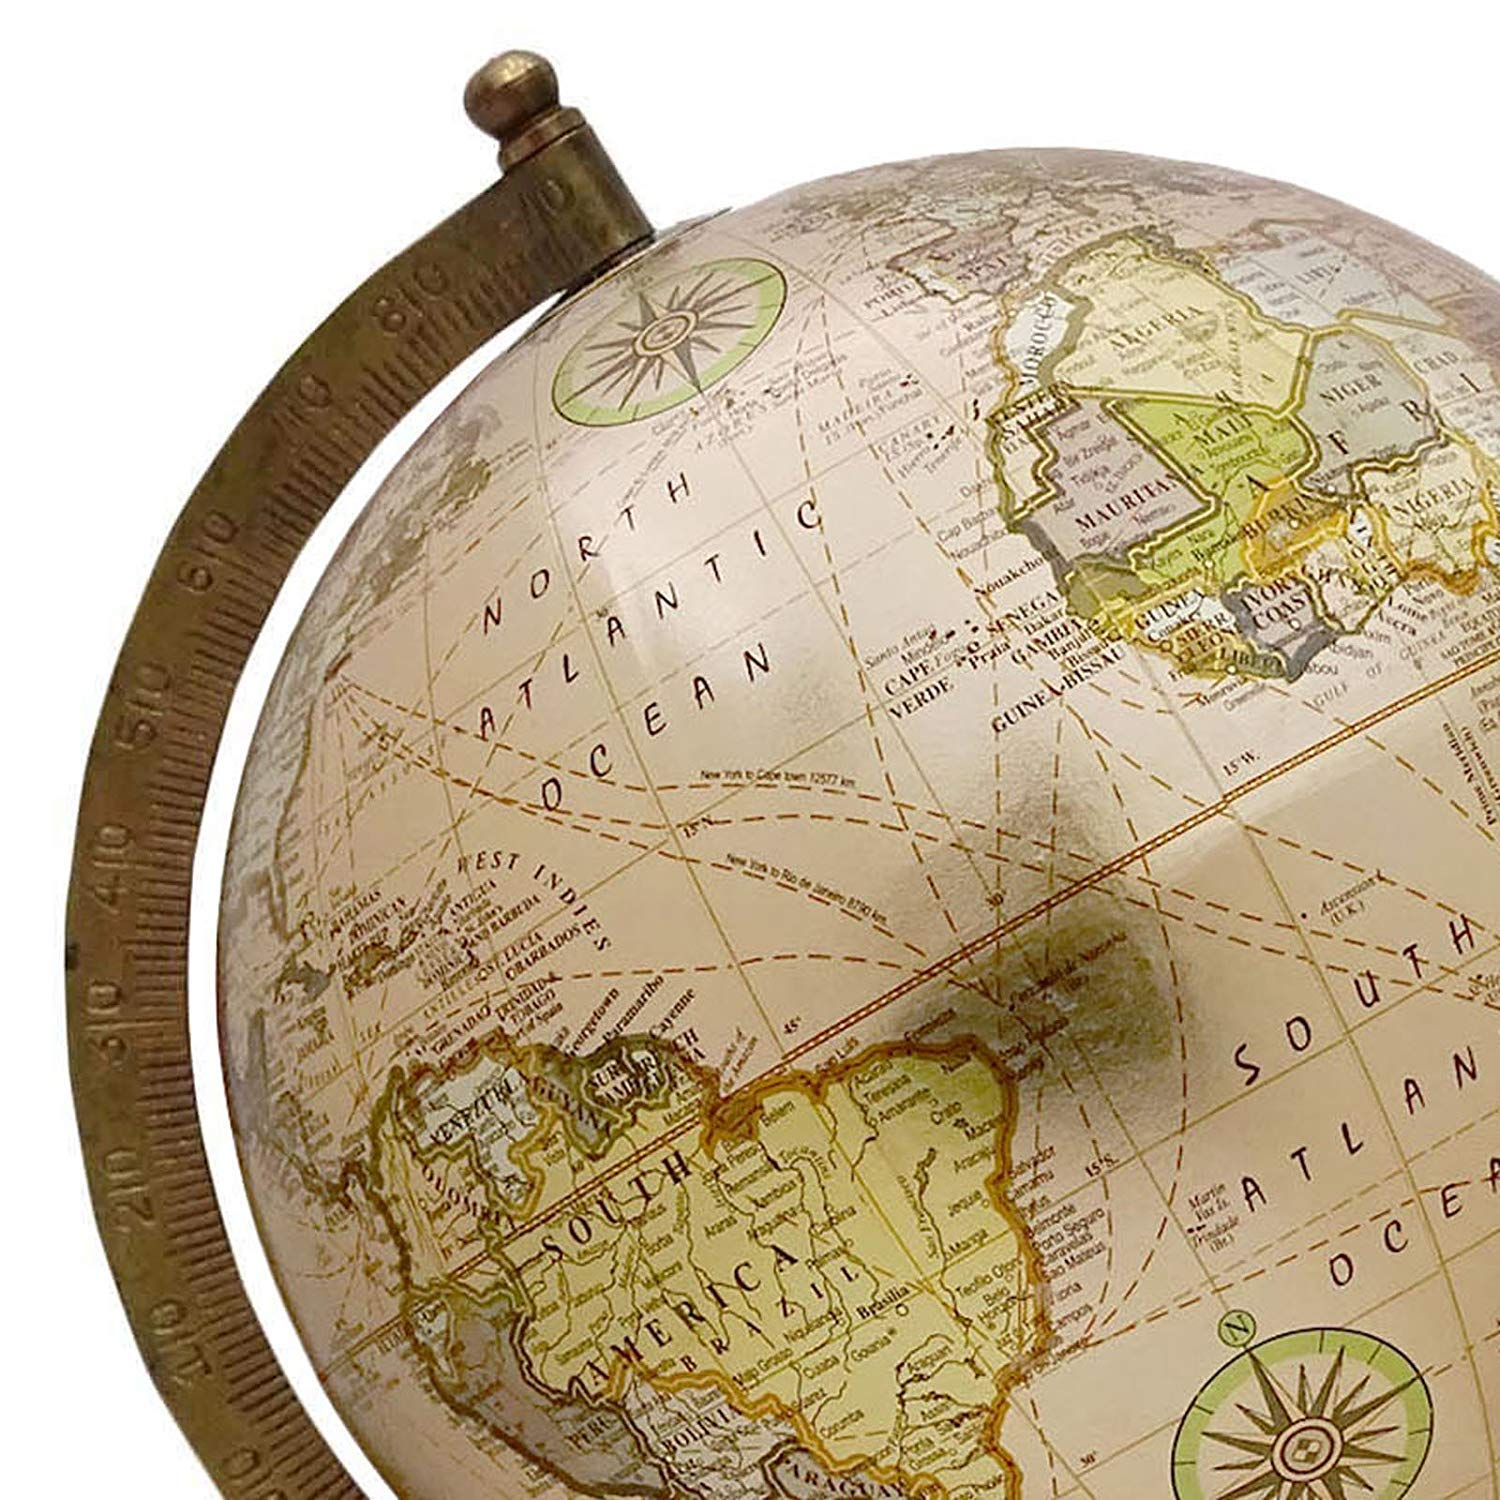 13 Decorative Rotating Earth Globe Beige Ocean World Geography Home Decor Perfect for Home Office /& Classroom By Globes Hub